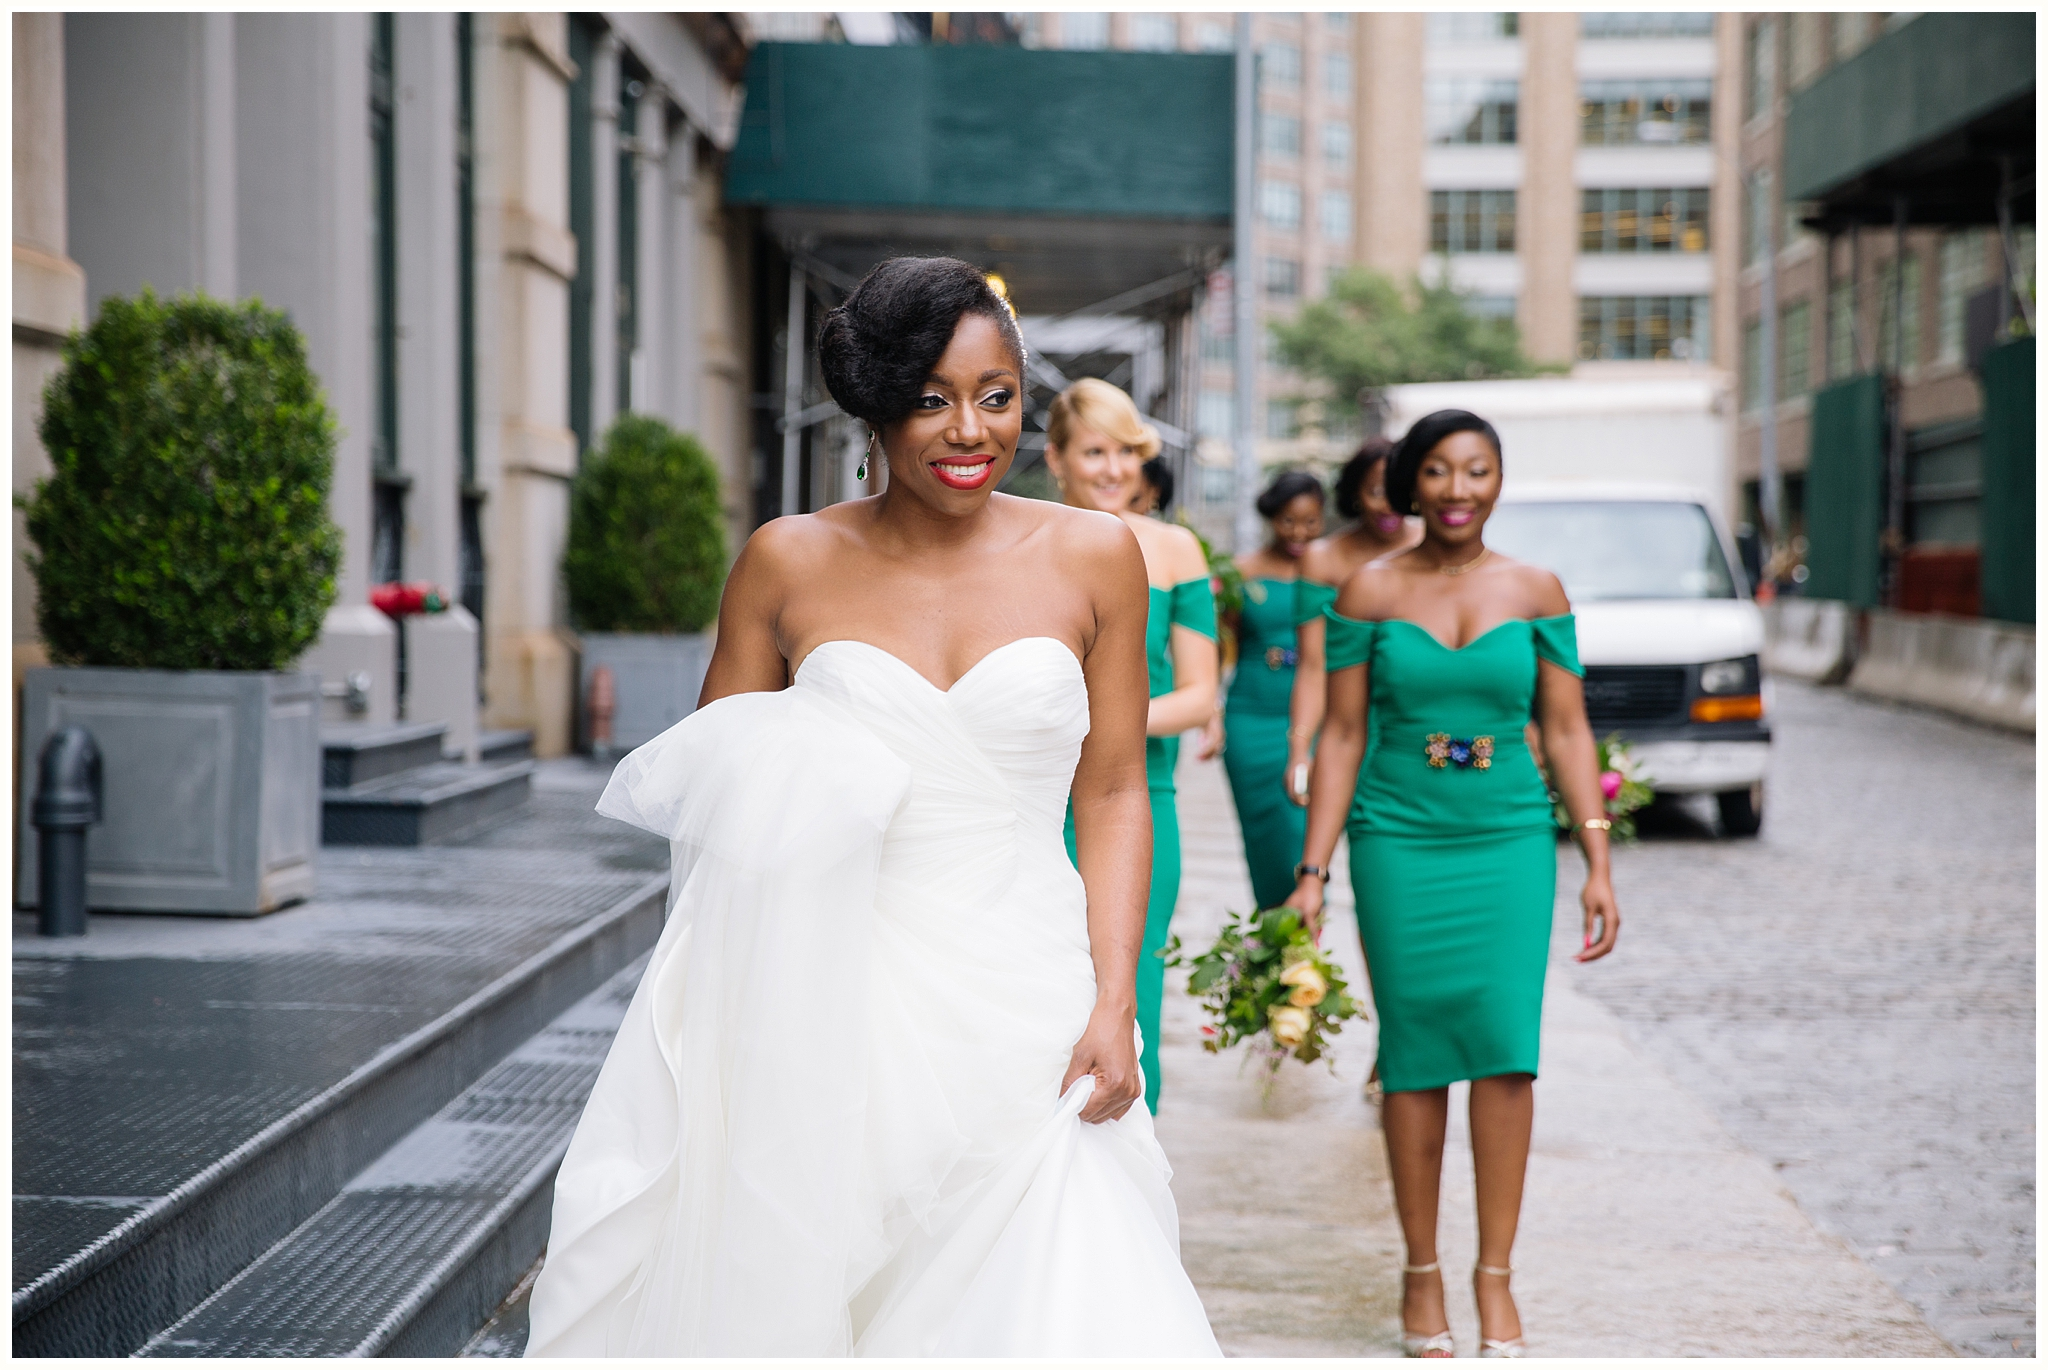 NYC Tribeca Rooftop Wedding Photographer_0016.jpg